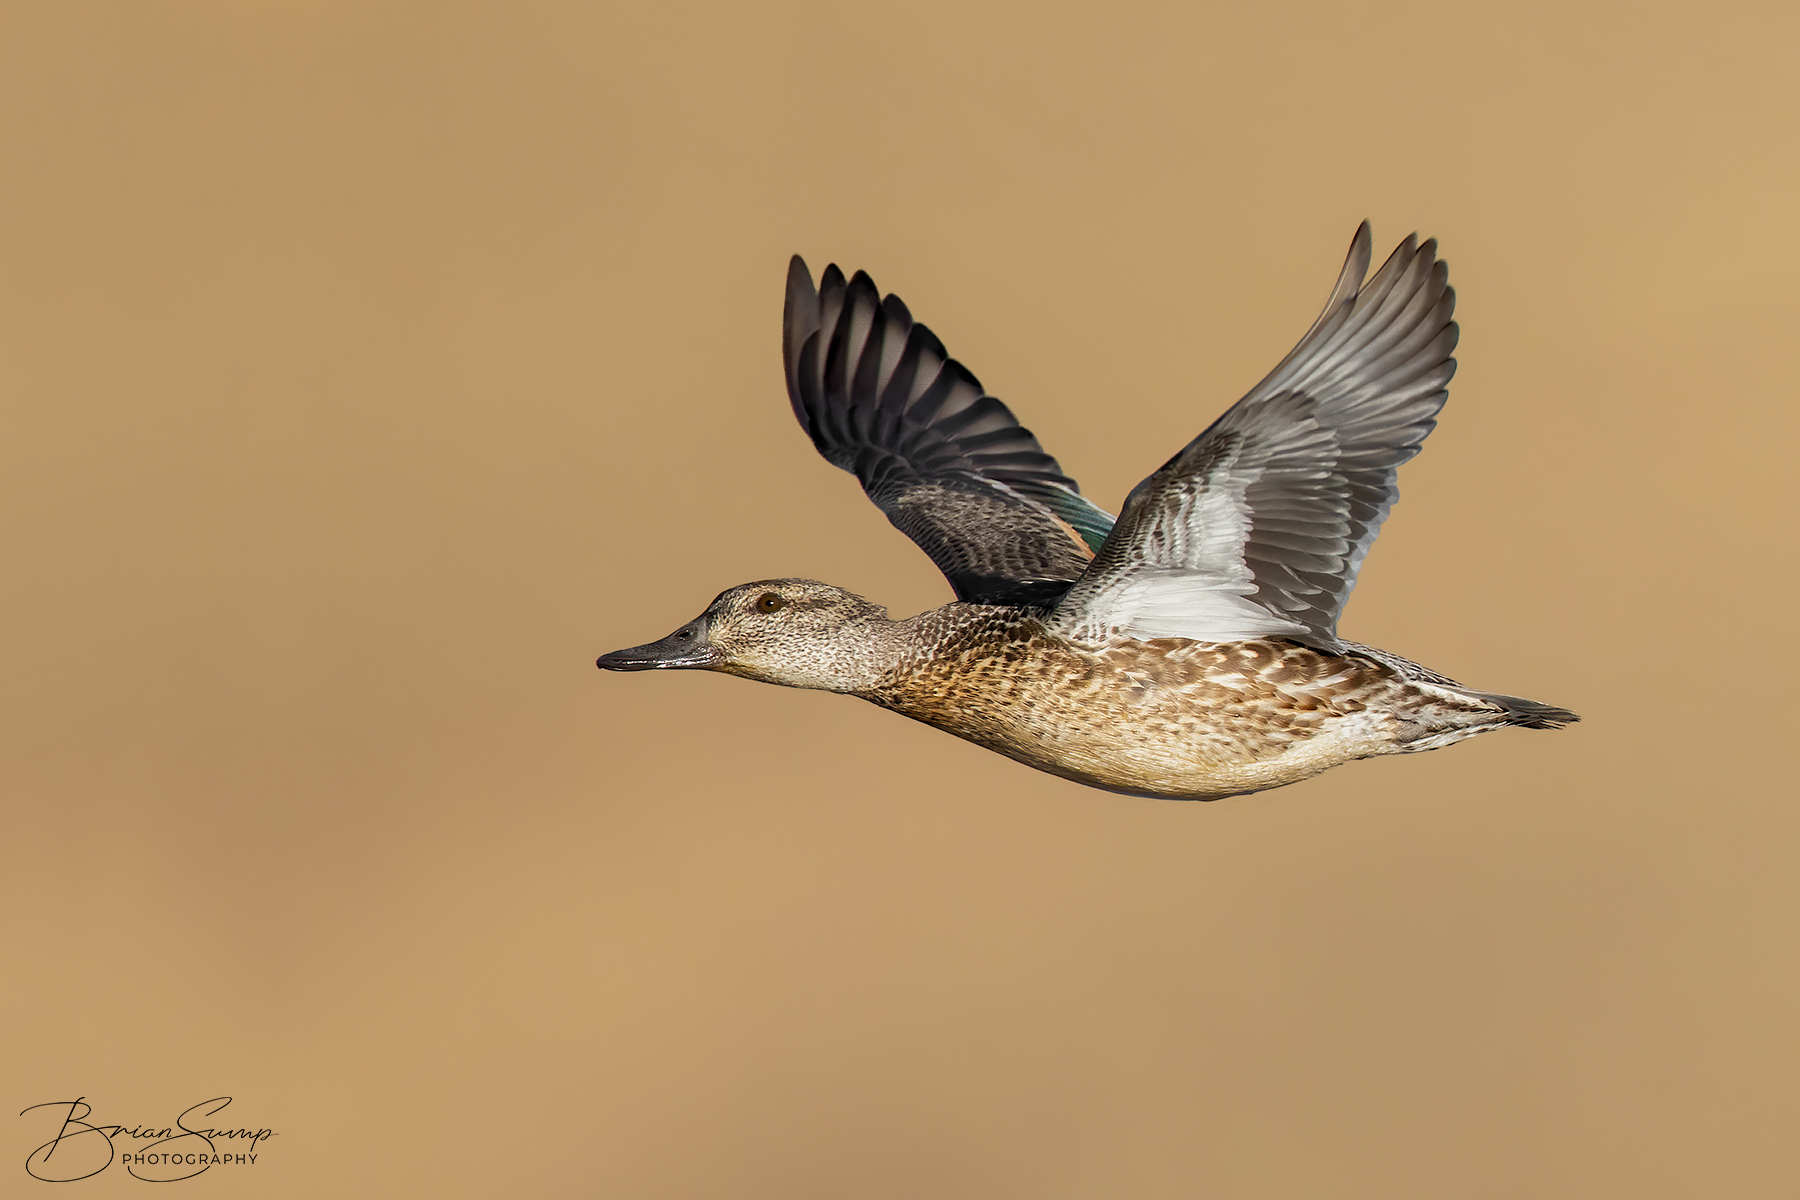 Name:  20201030-Green-Winged-Teal-hen-wingsup-Brian-Sump-BMS_8719-FORUM-SIG-USM150-brush-touch.jpg Views: 190 Size:  587.2 KB